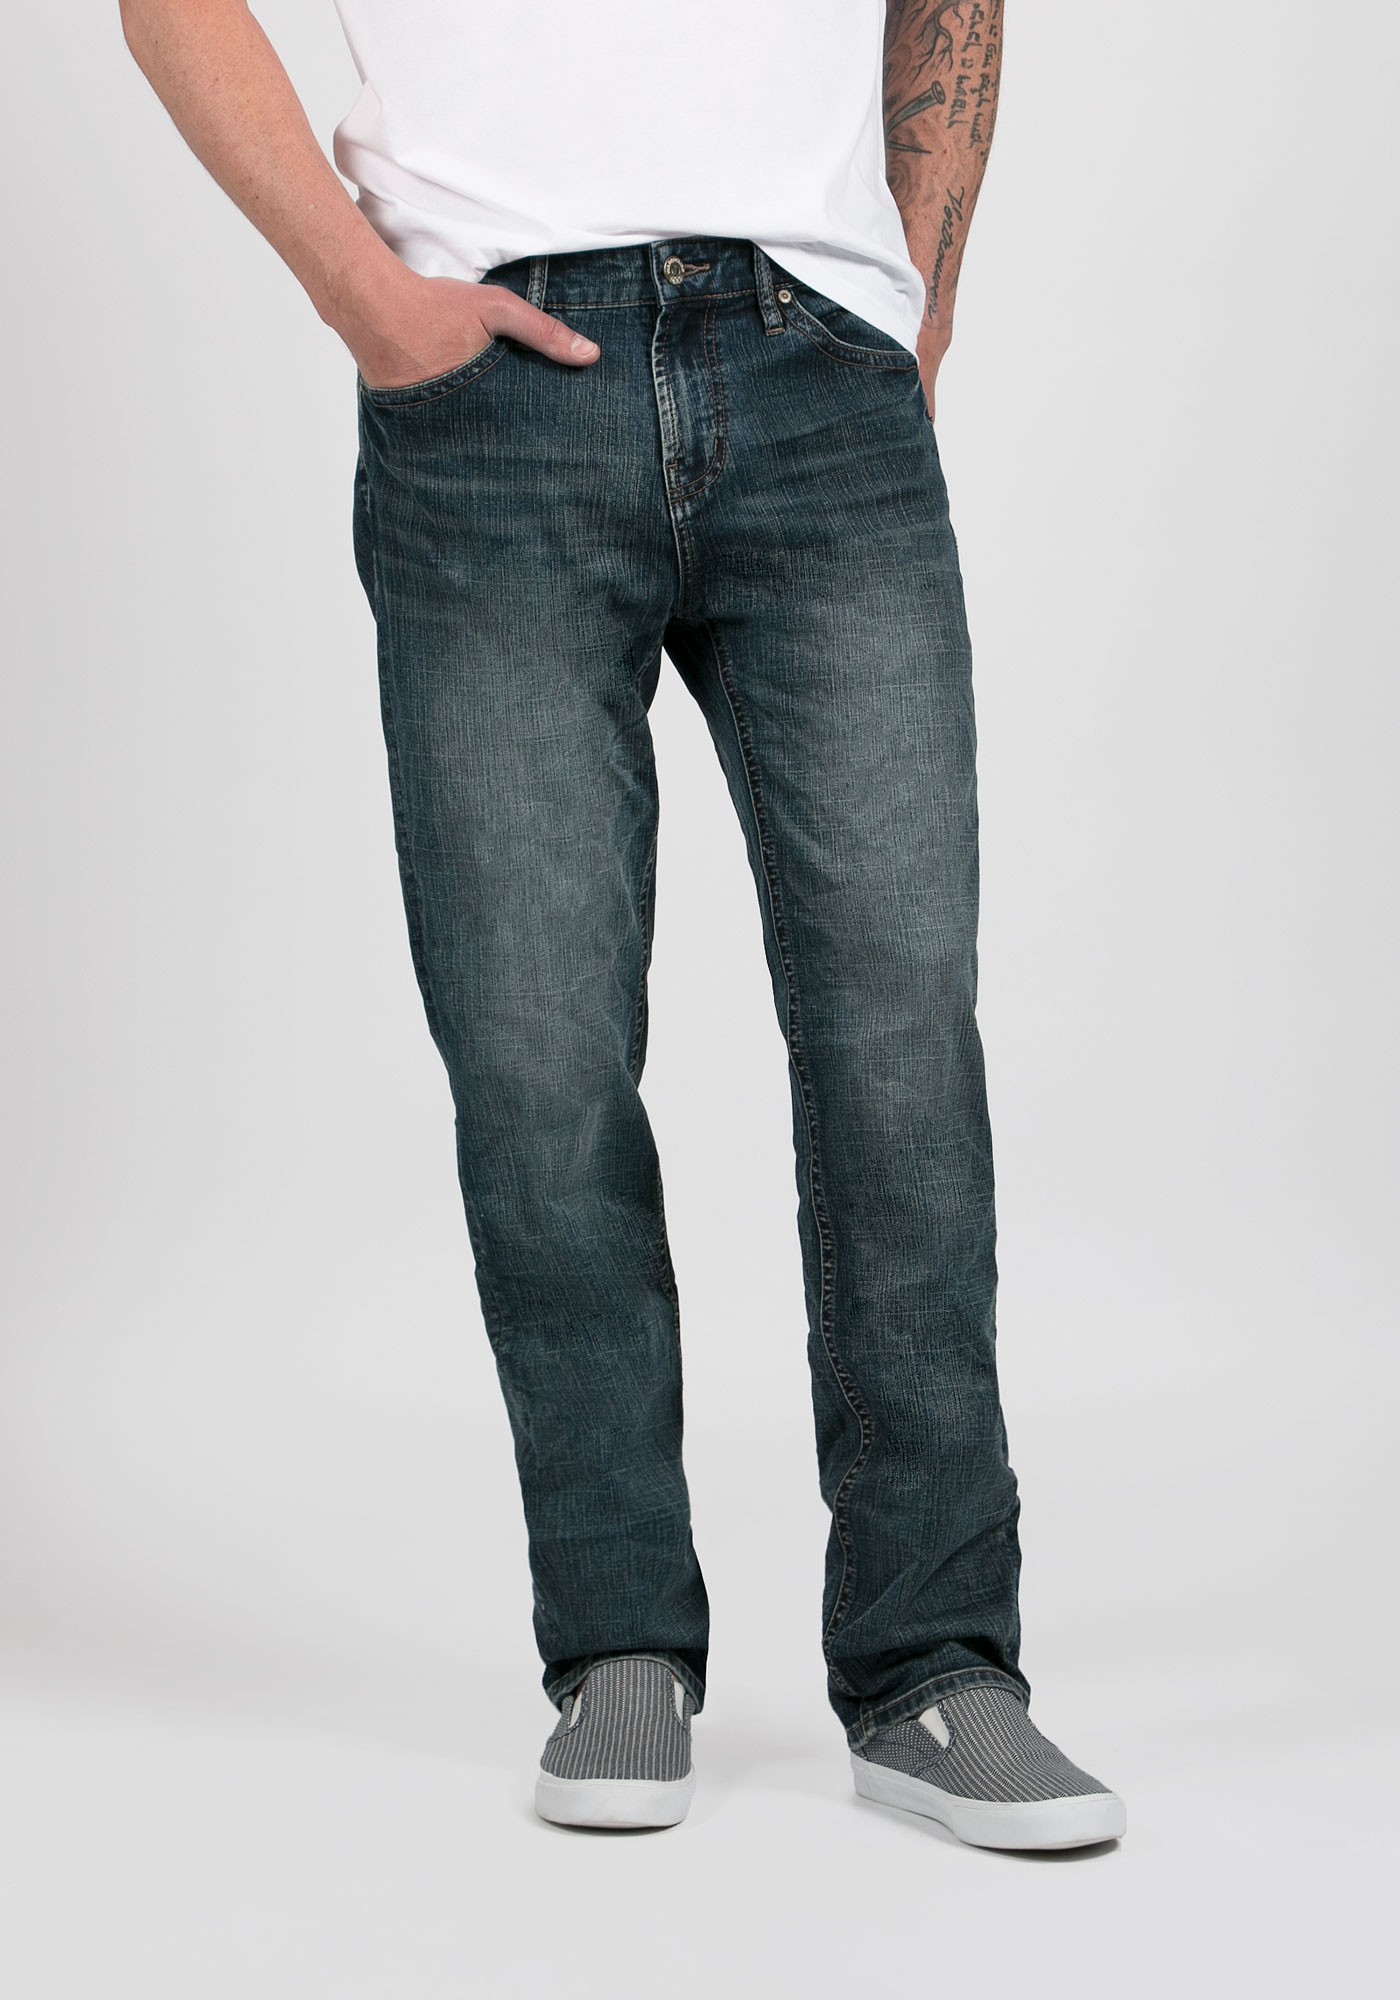 Men's Slim Straight Jeans, MEDIUM WASH, hi-res